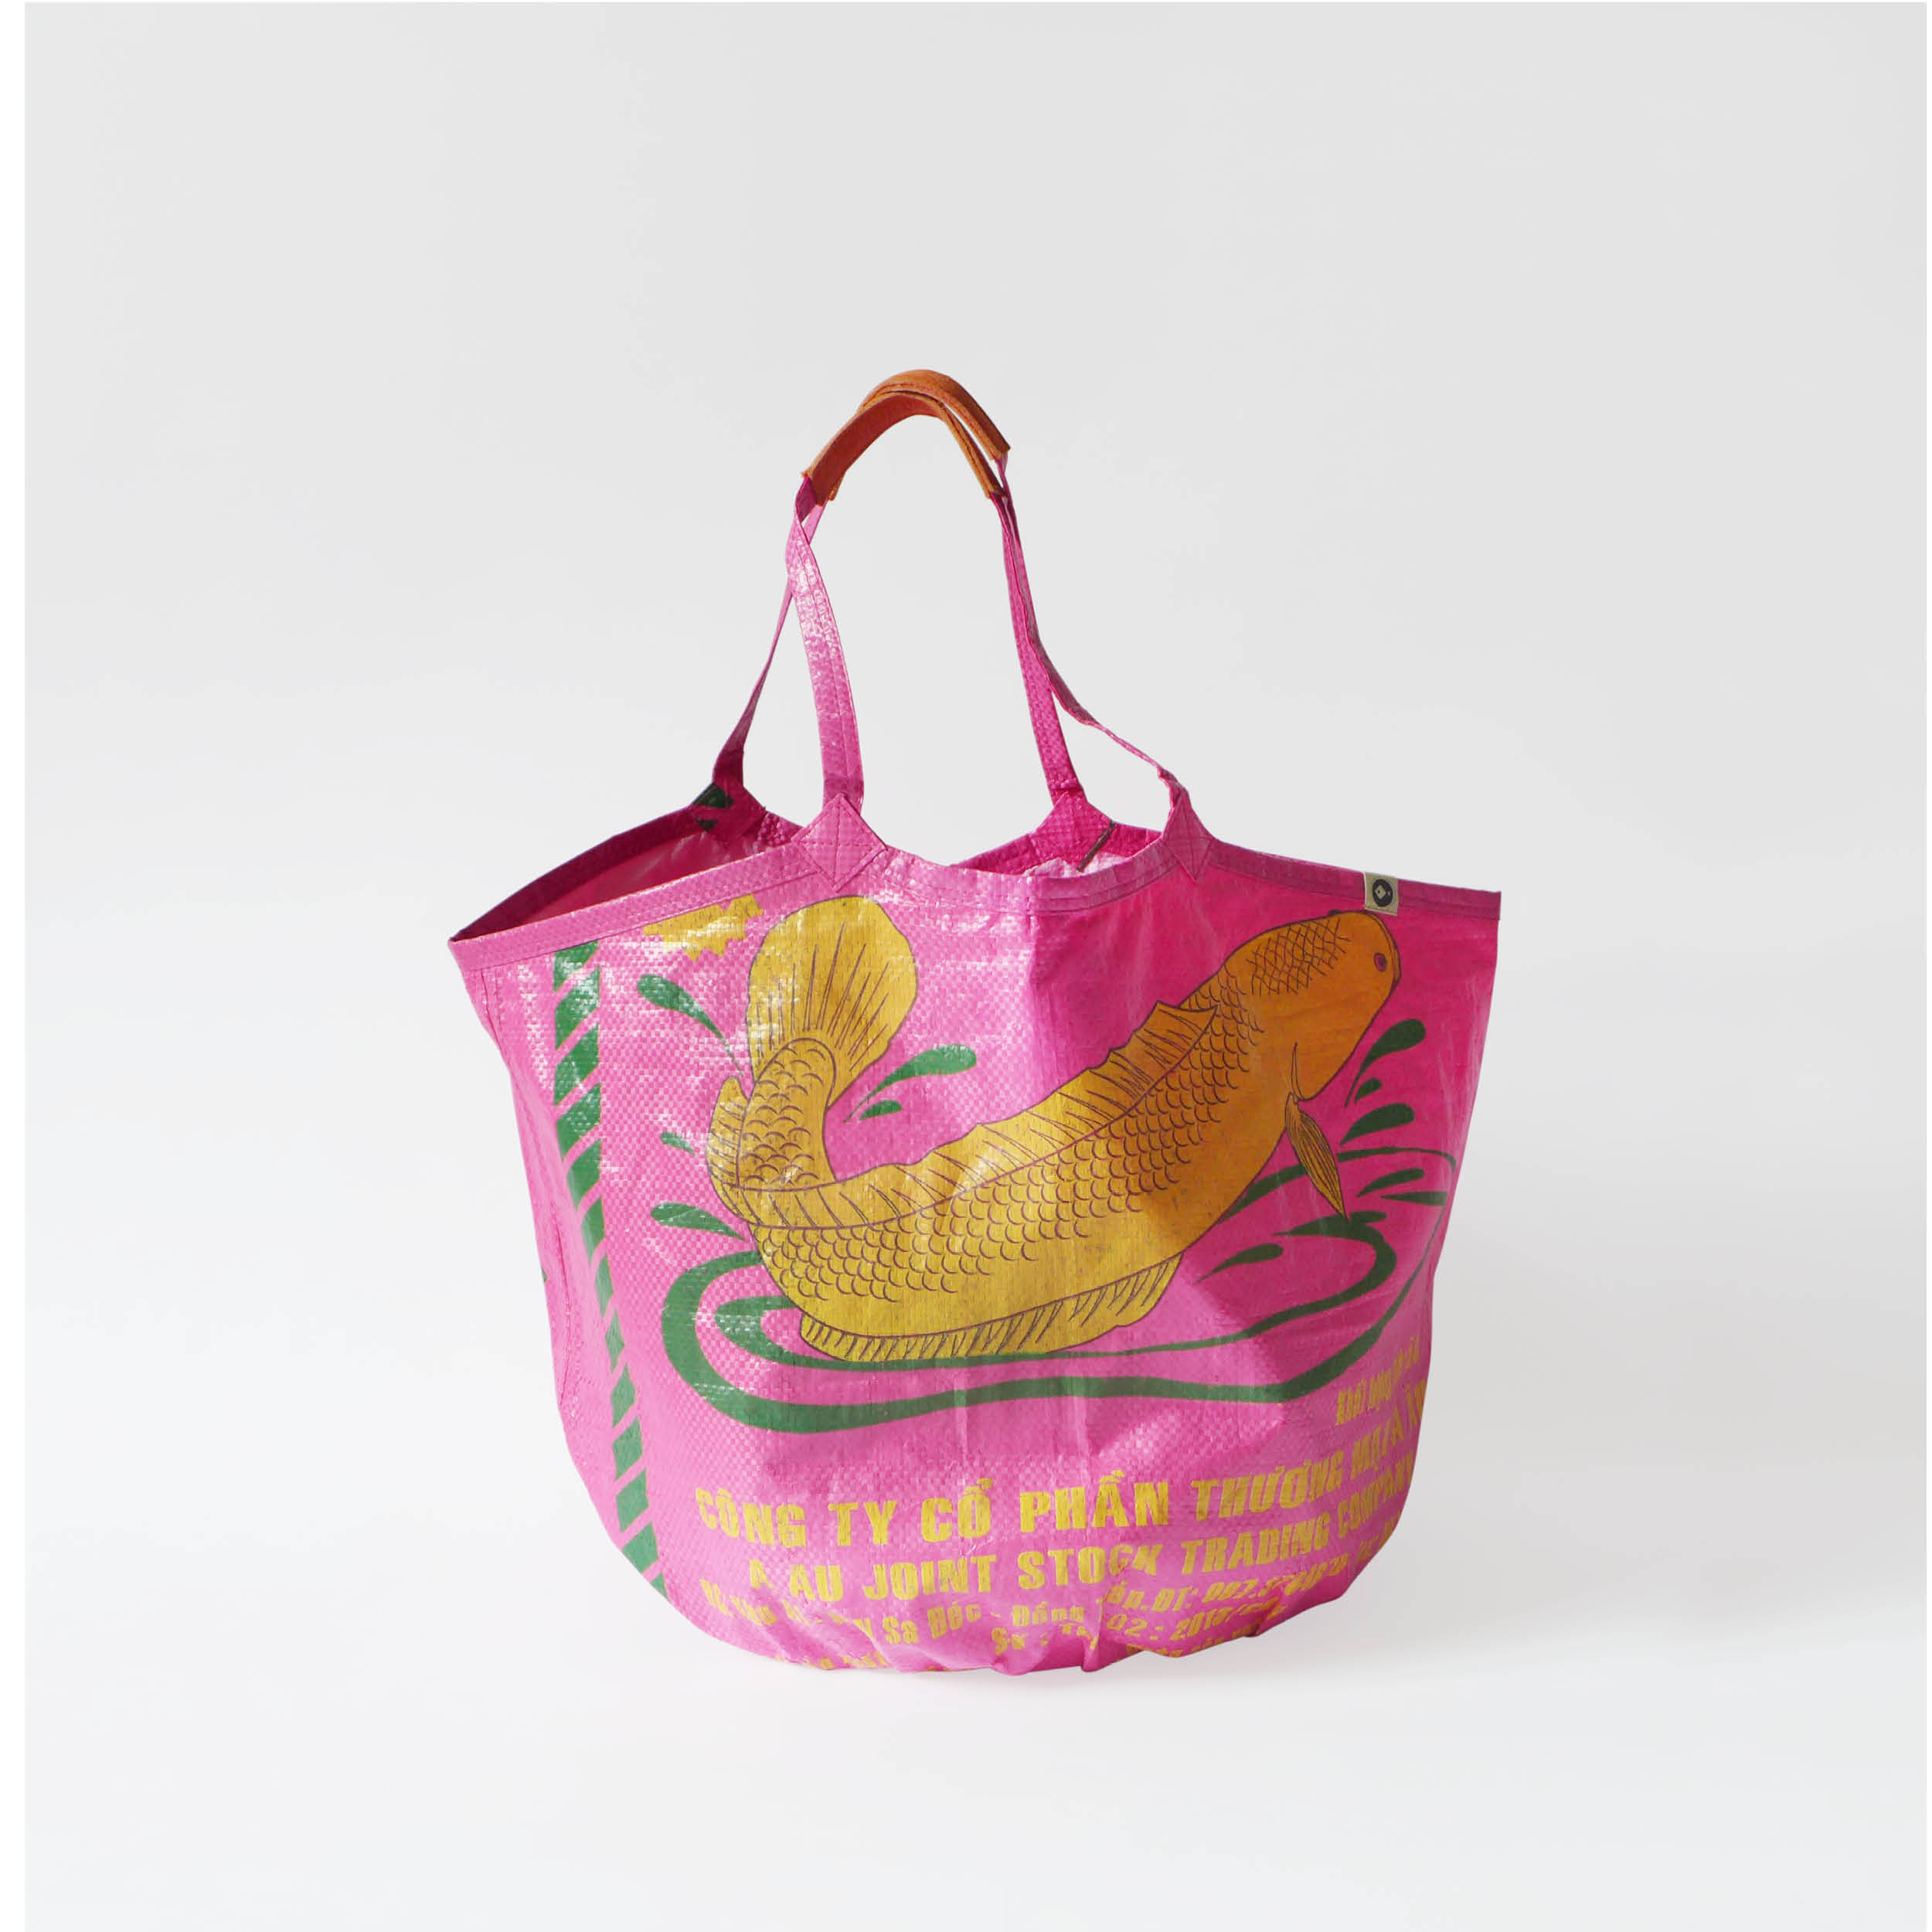 refished-tasche-soulmate-pink-class.jpg